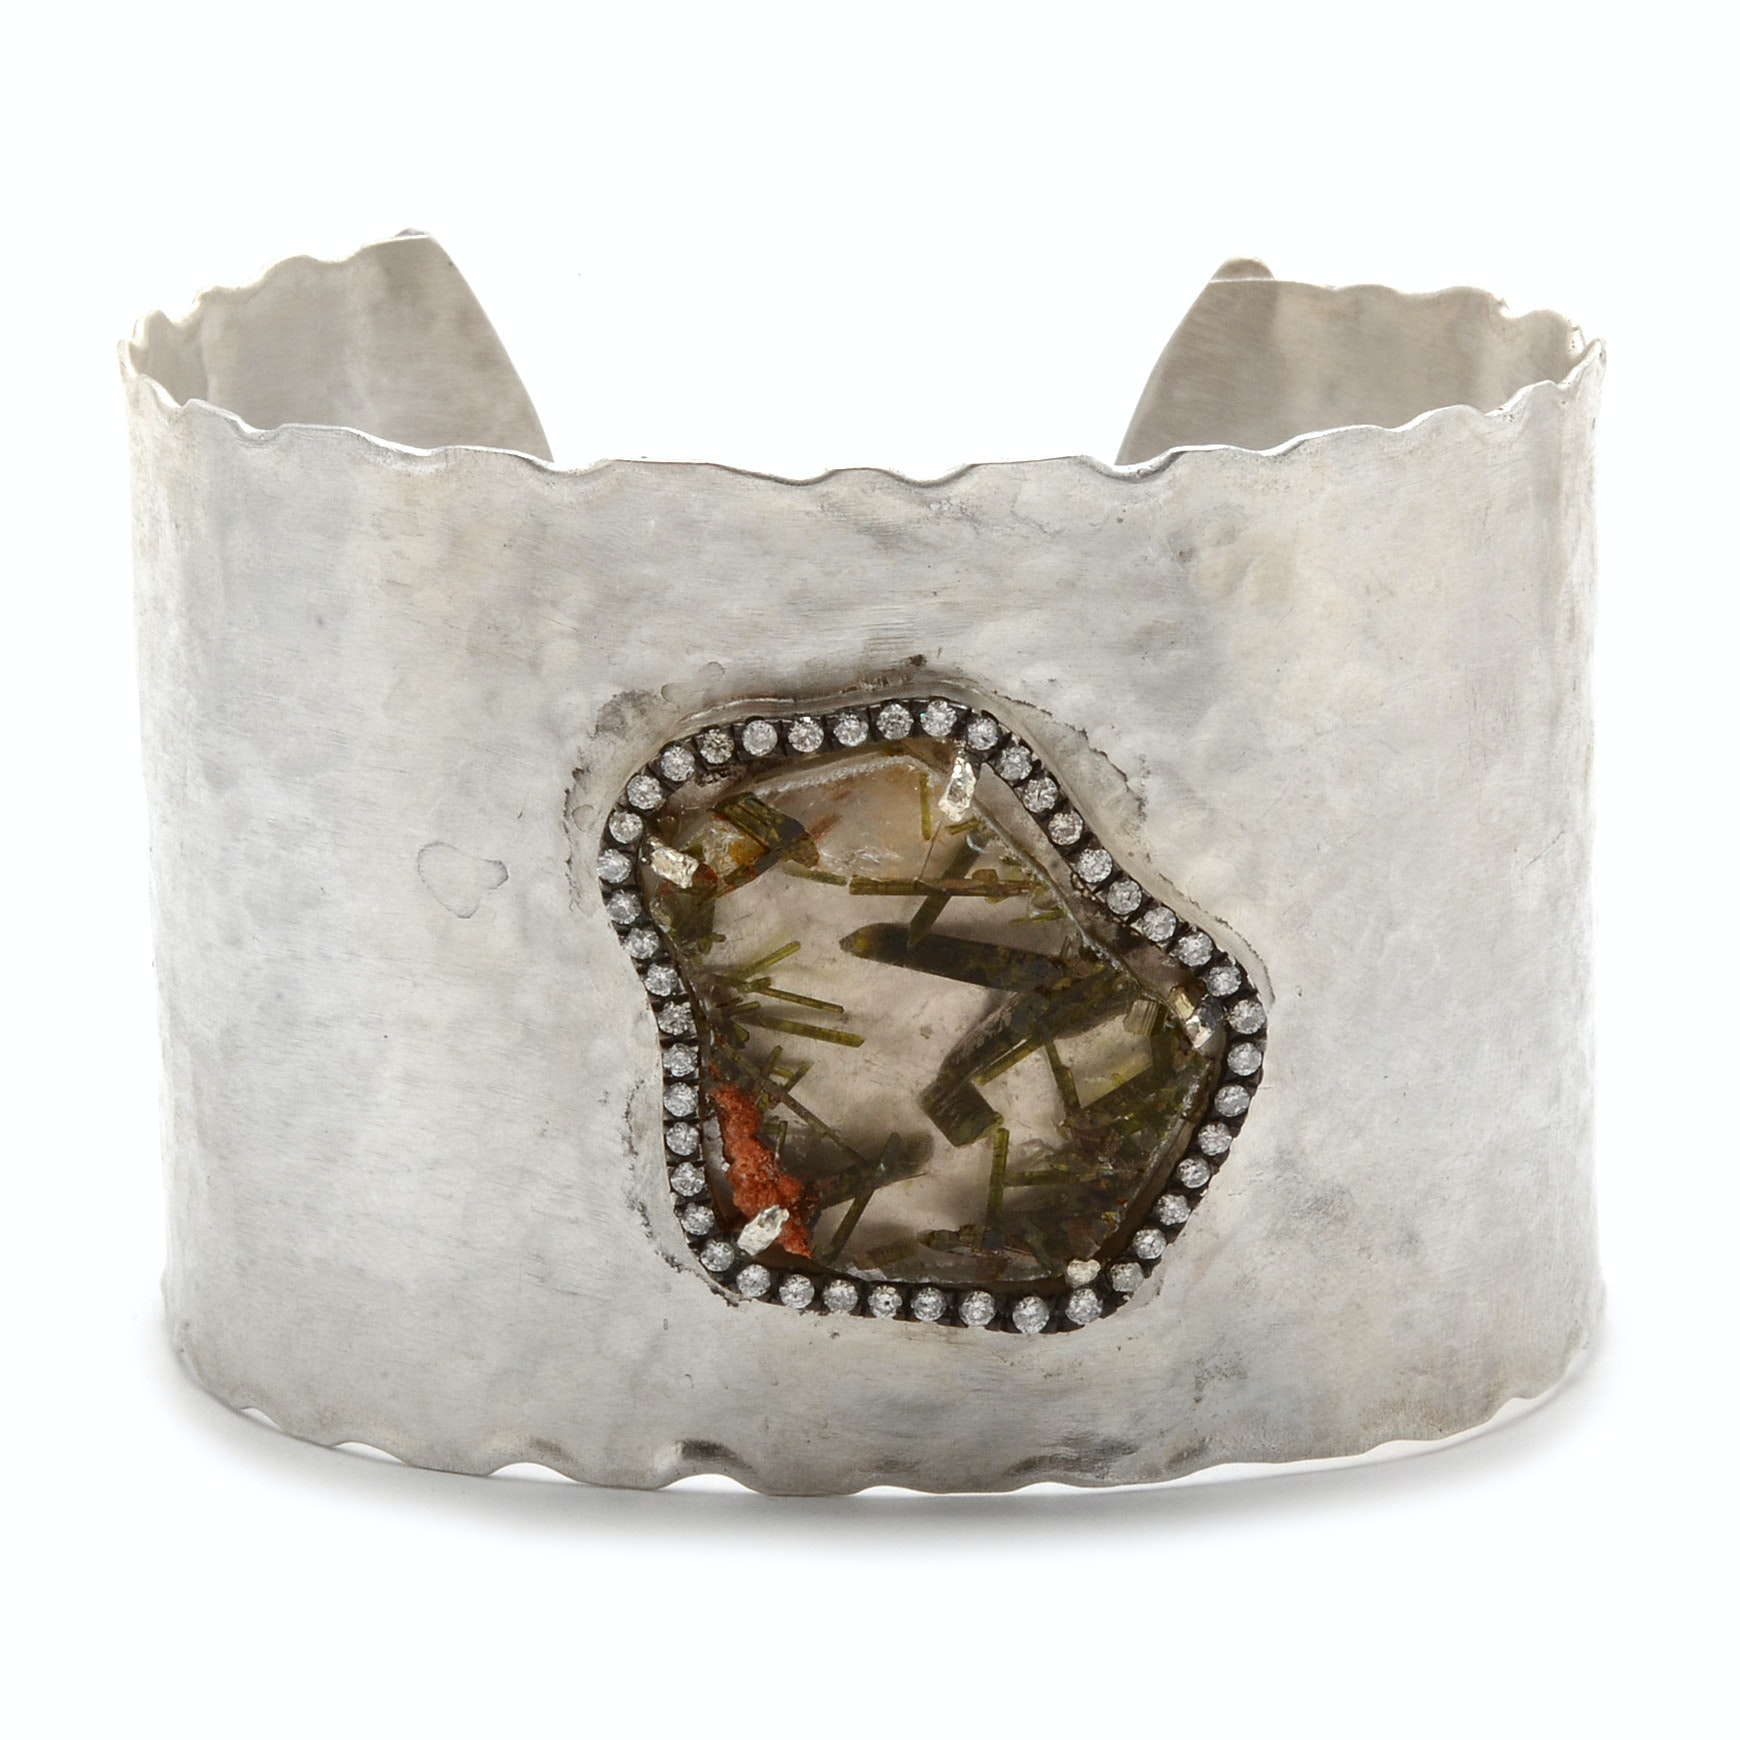 Jordan Alexander Sterling Silver Epidote Quartz Slice and Diamond Cuff Bracelet